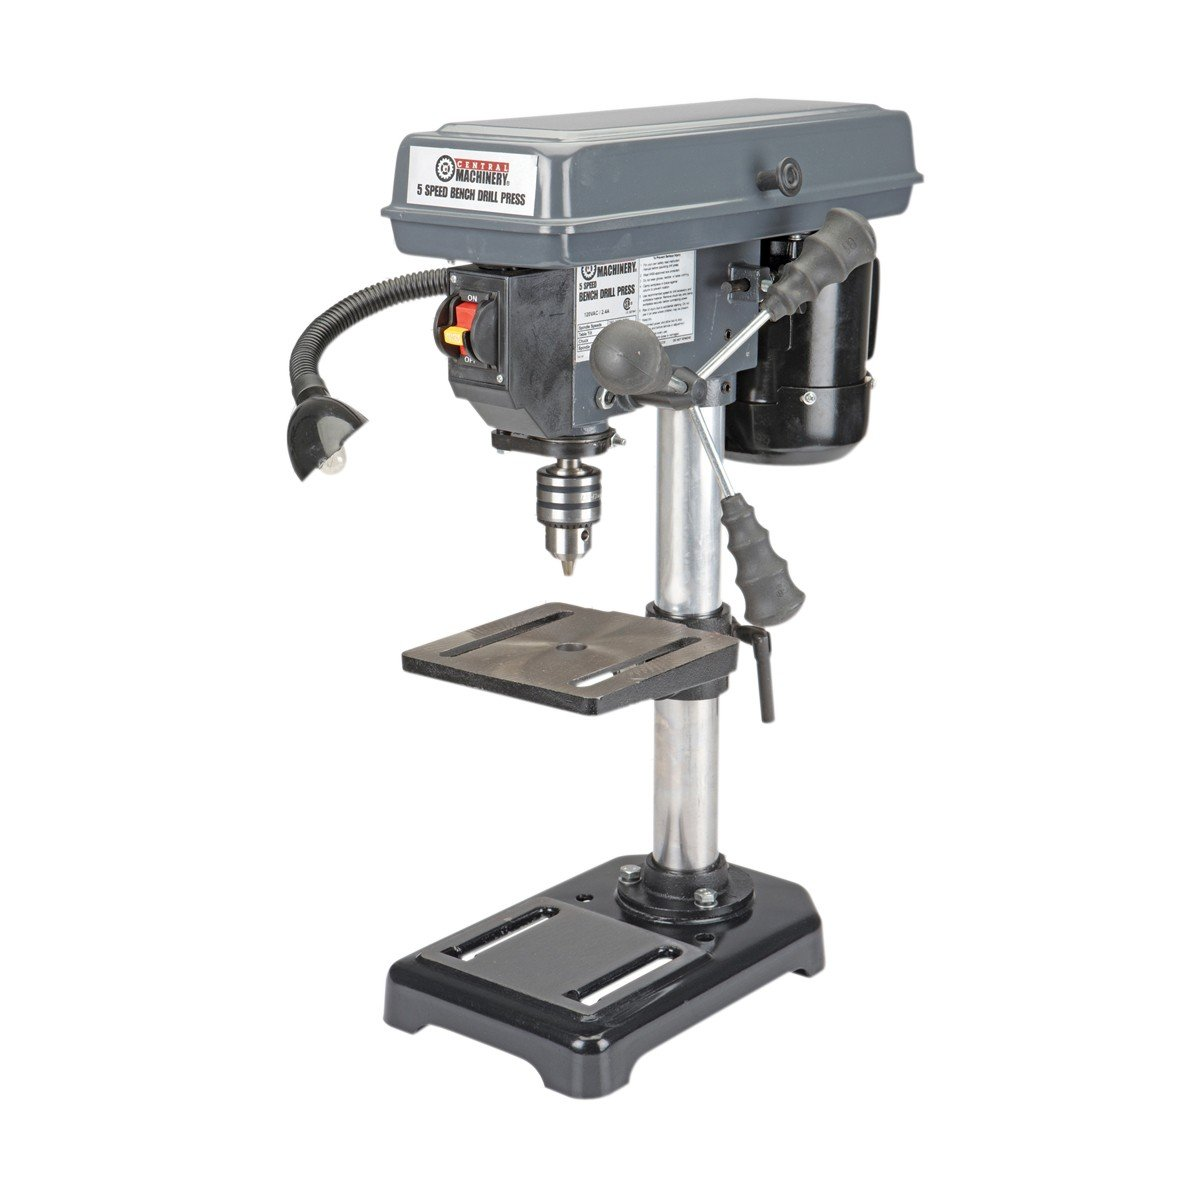 Central Machinery 60238 5 Speed Bench Drill Press.